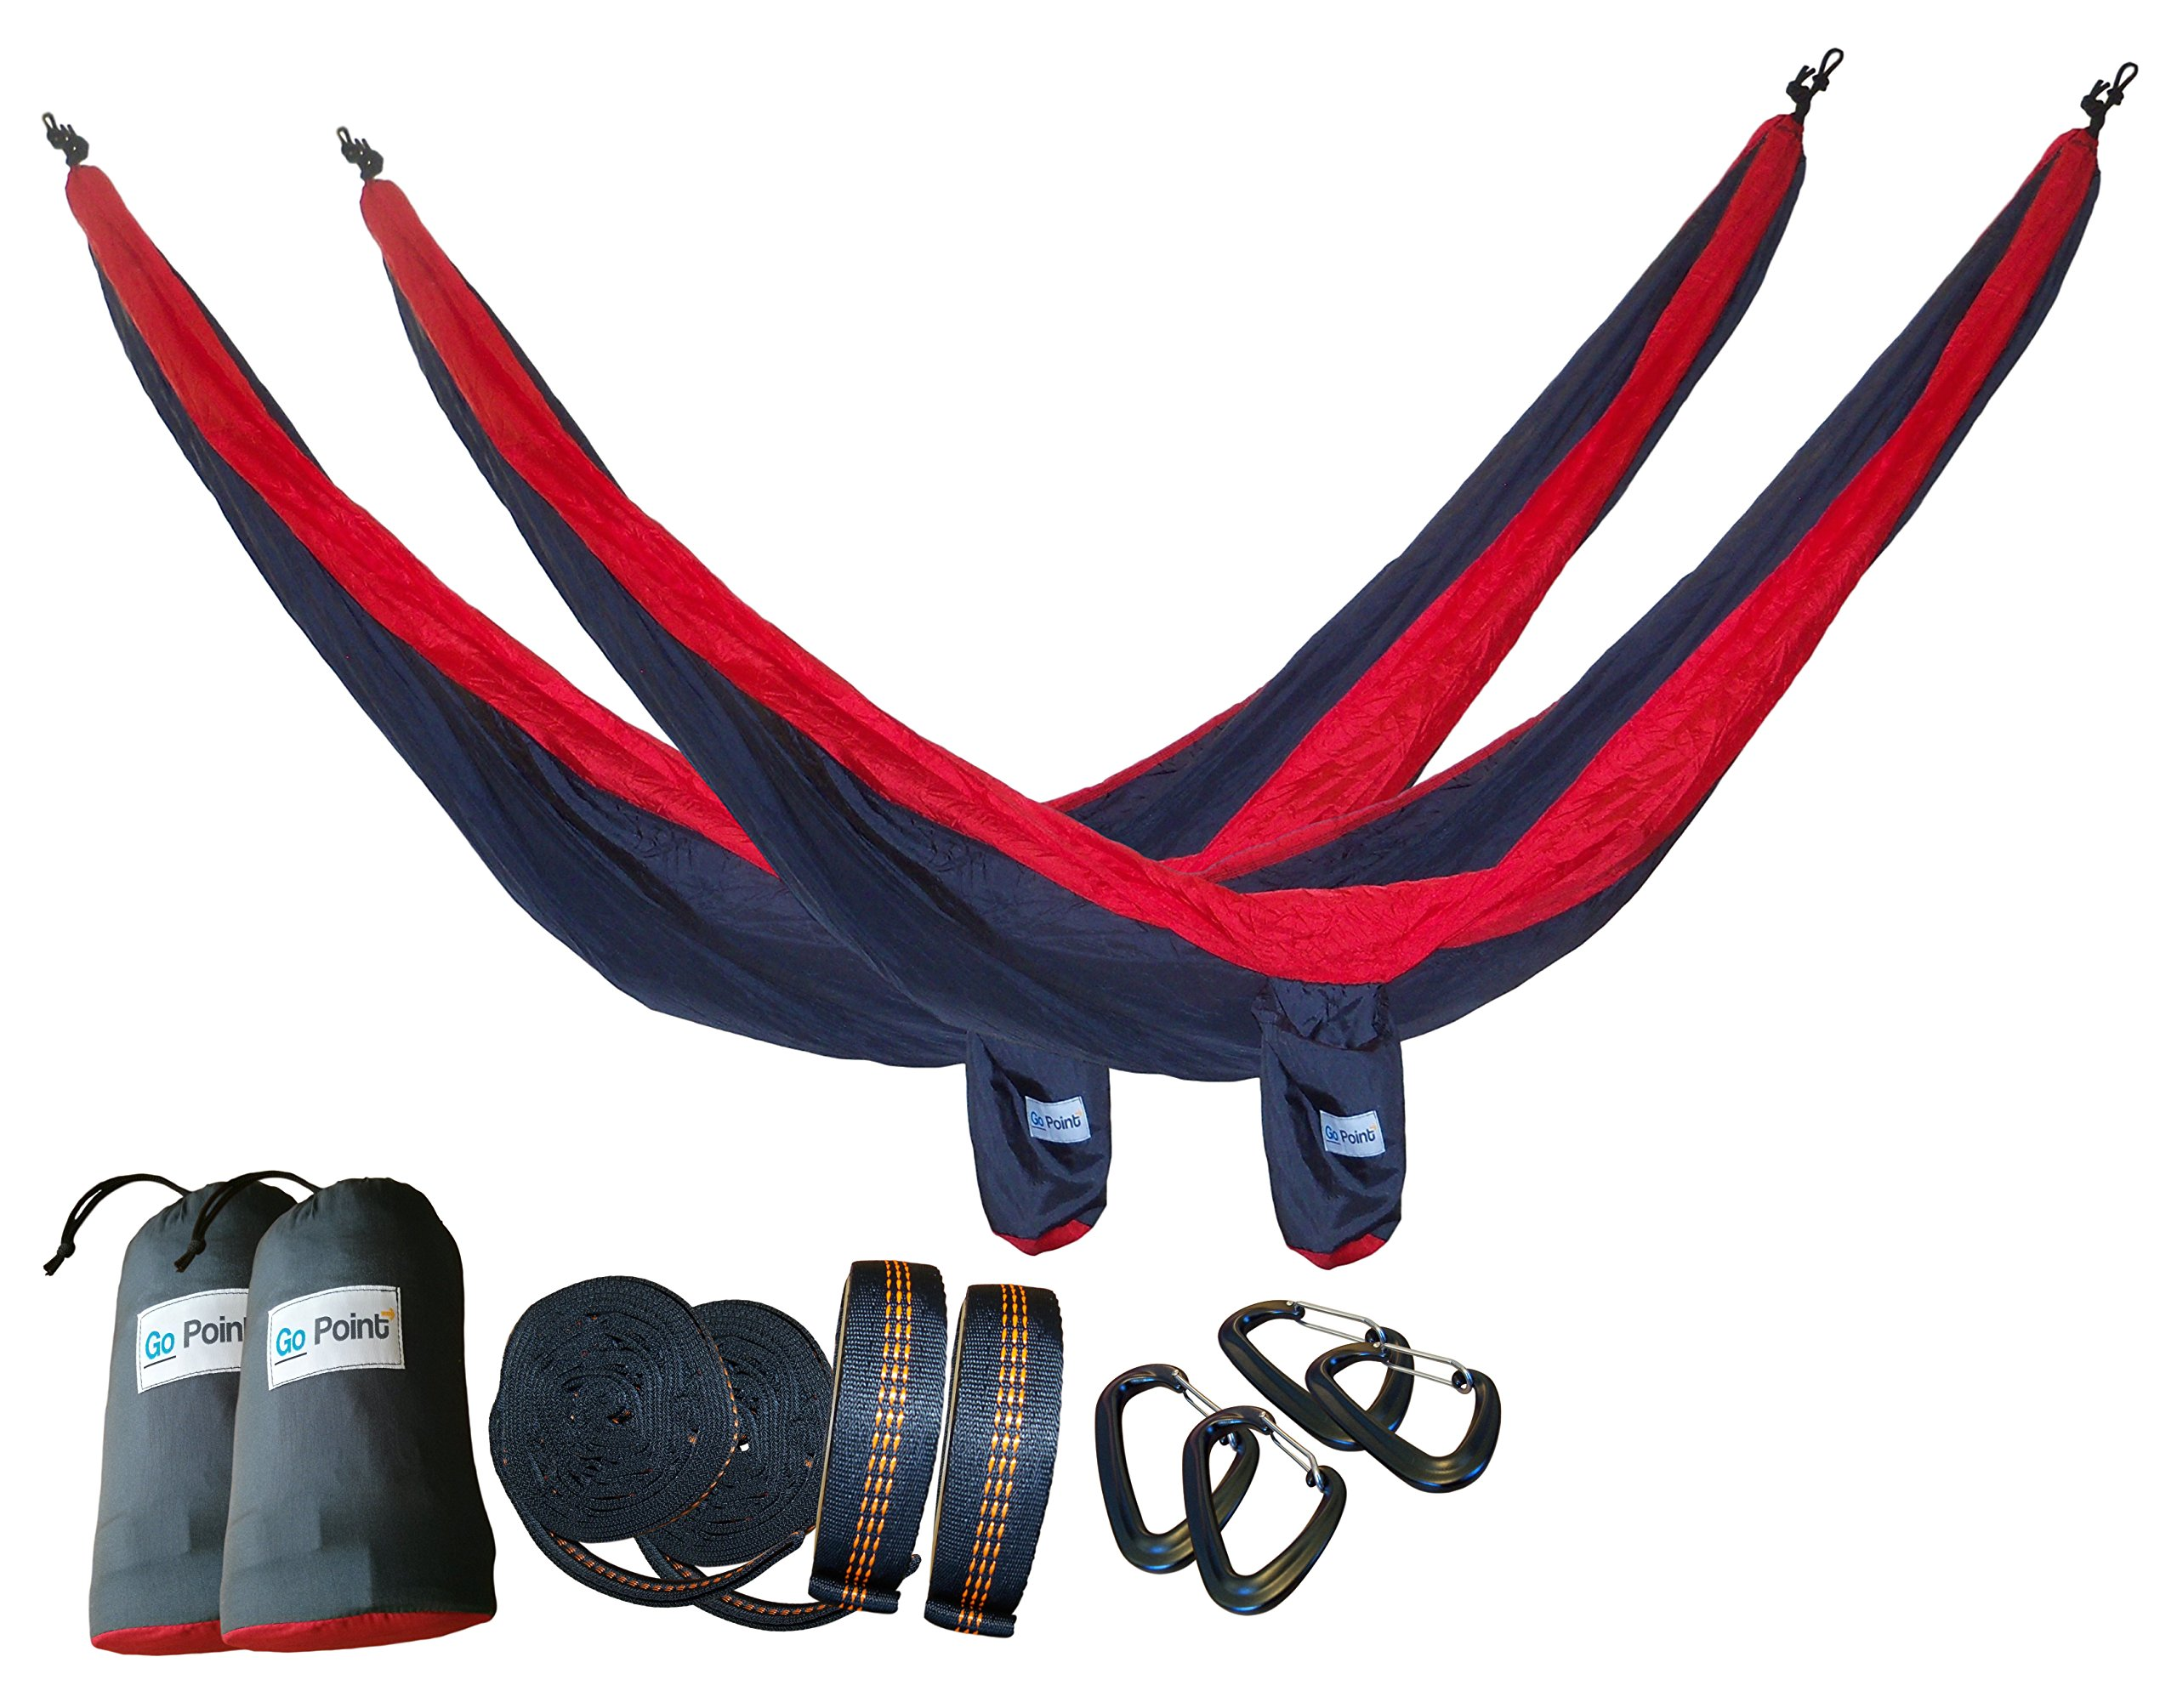 GoPoint Double Parachute Hammocks With Tree Straps - QUICK And EASY To Hang Portable Lightweight Nylon Camping Hammocks, Red and Grey (Pack of 2)